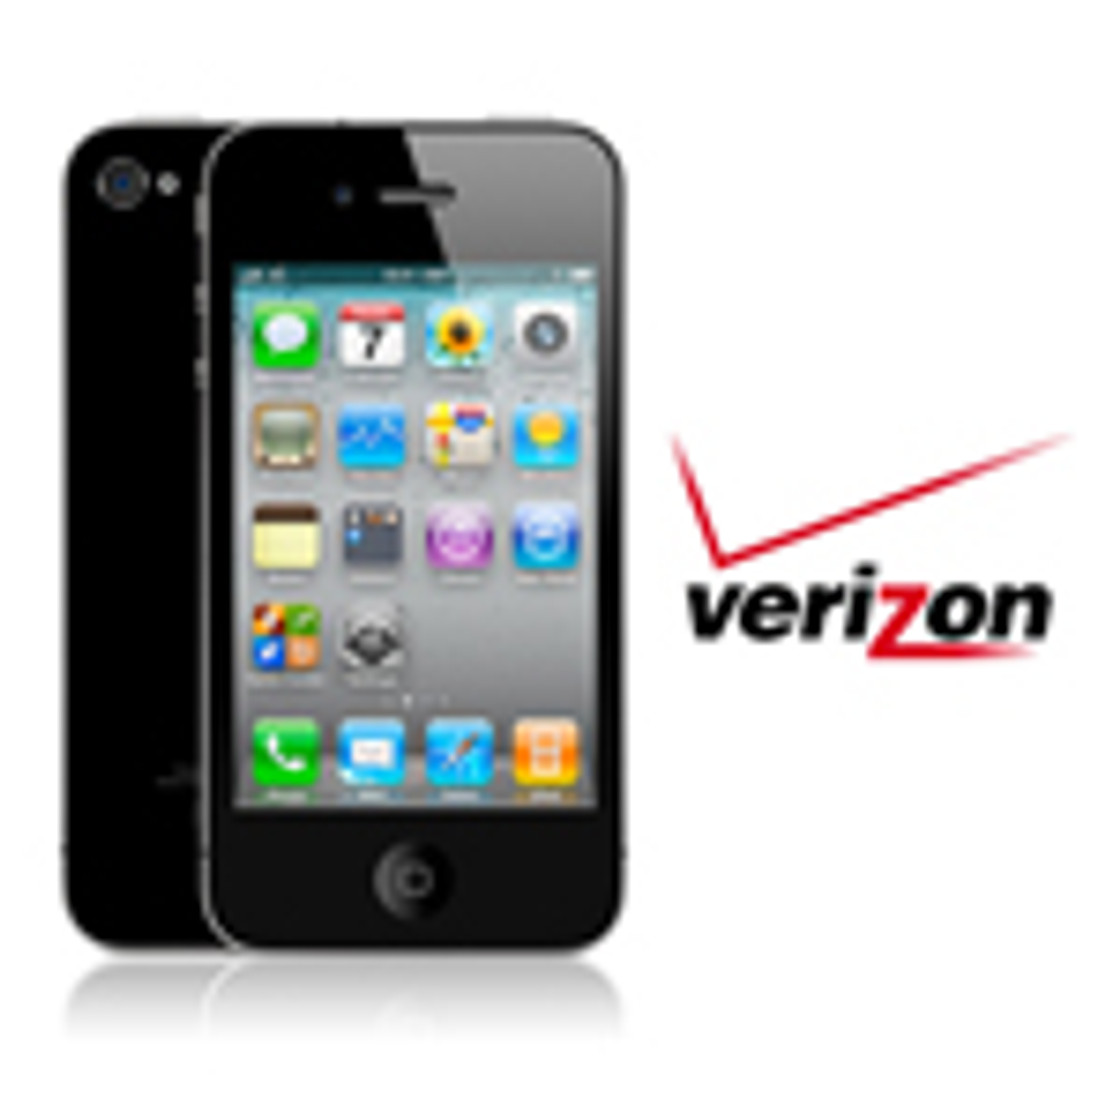 Verizon & Sprint iPhone 4